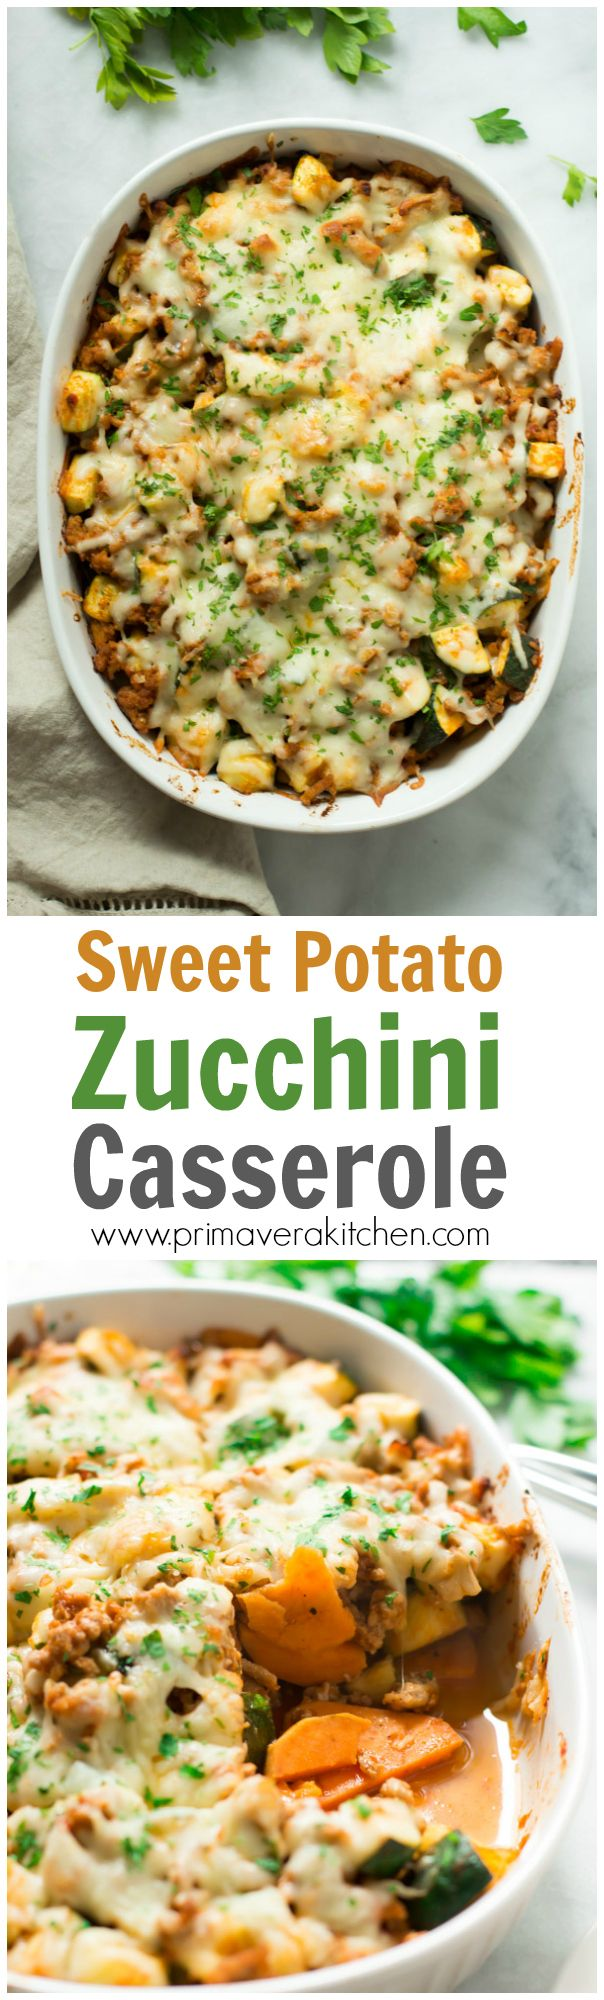 sweet-potato-zucchini-casserole - This Sweet Potato Zucchini Casserole recipe is incredible flavourful, gluten-free, easy to make and it'll be on your table in less than 30 minutes. It's also an one-pan meal loaded with protein, vitamins and nutrients.